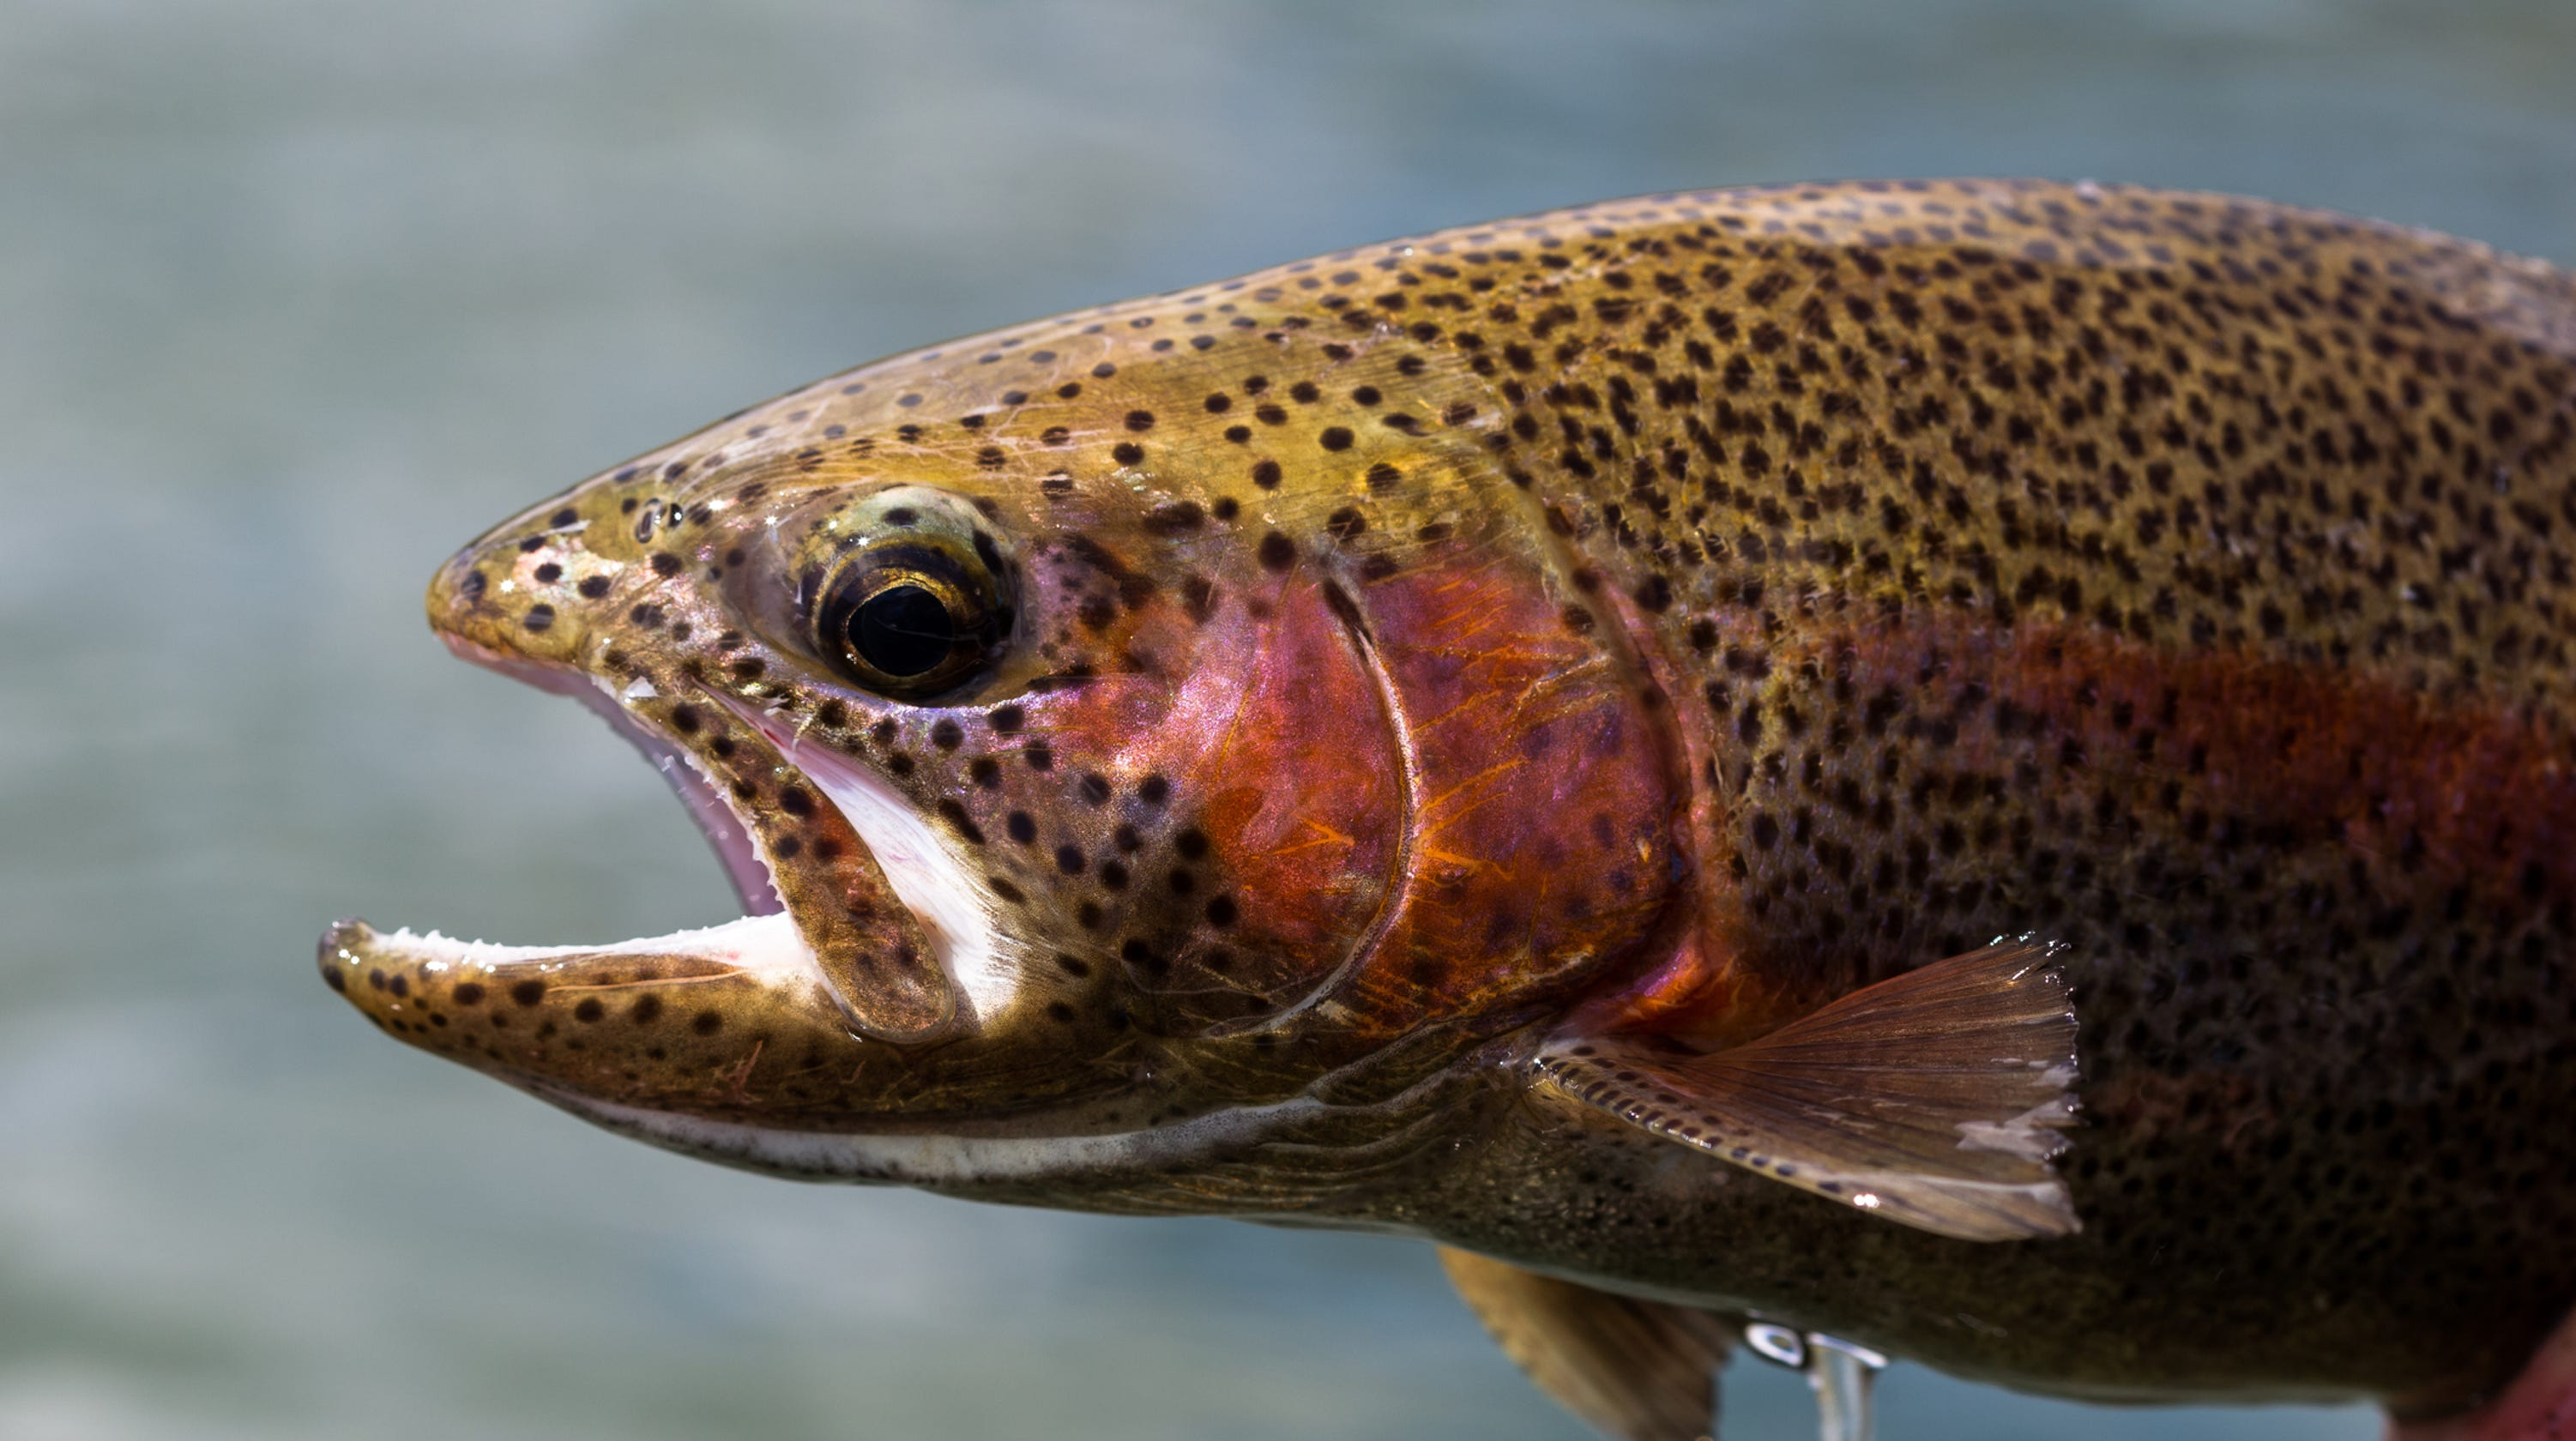 Ohio fishing: State stocking over 100,000 rainbow trout at